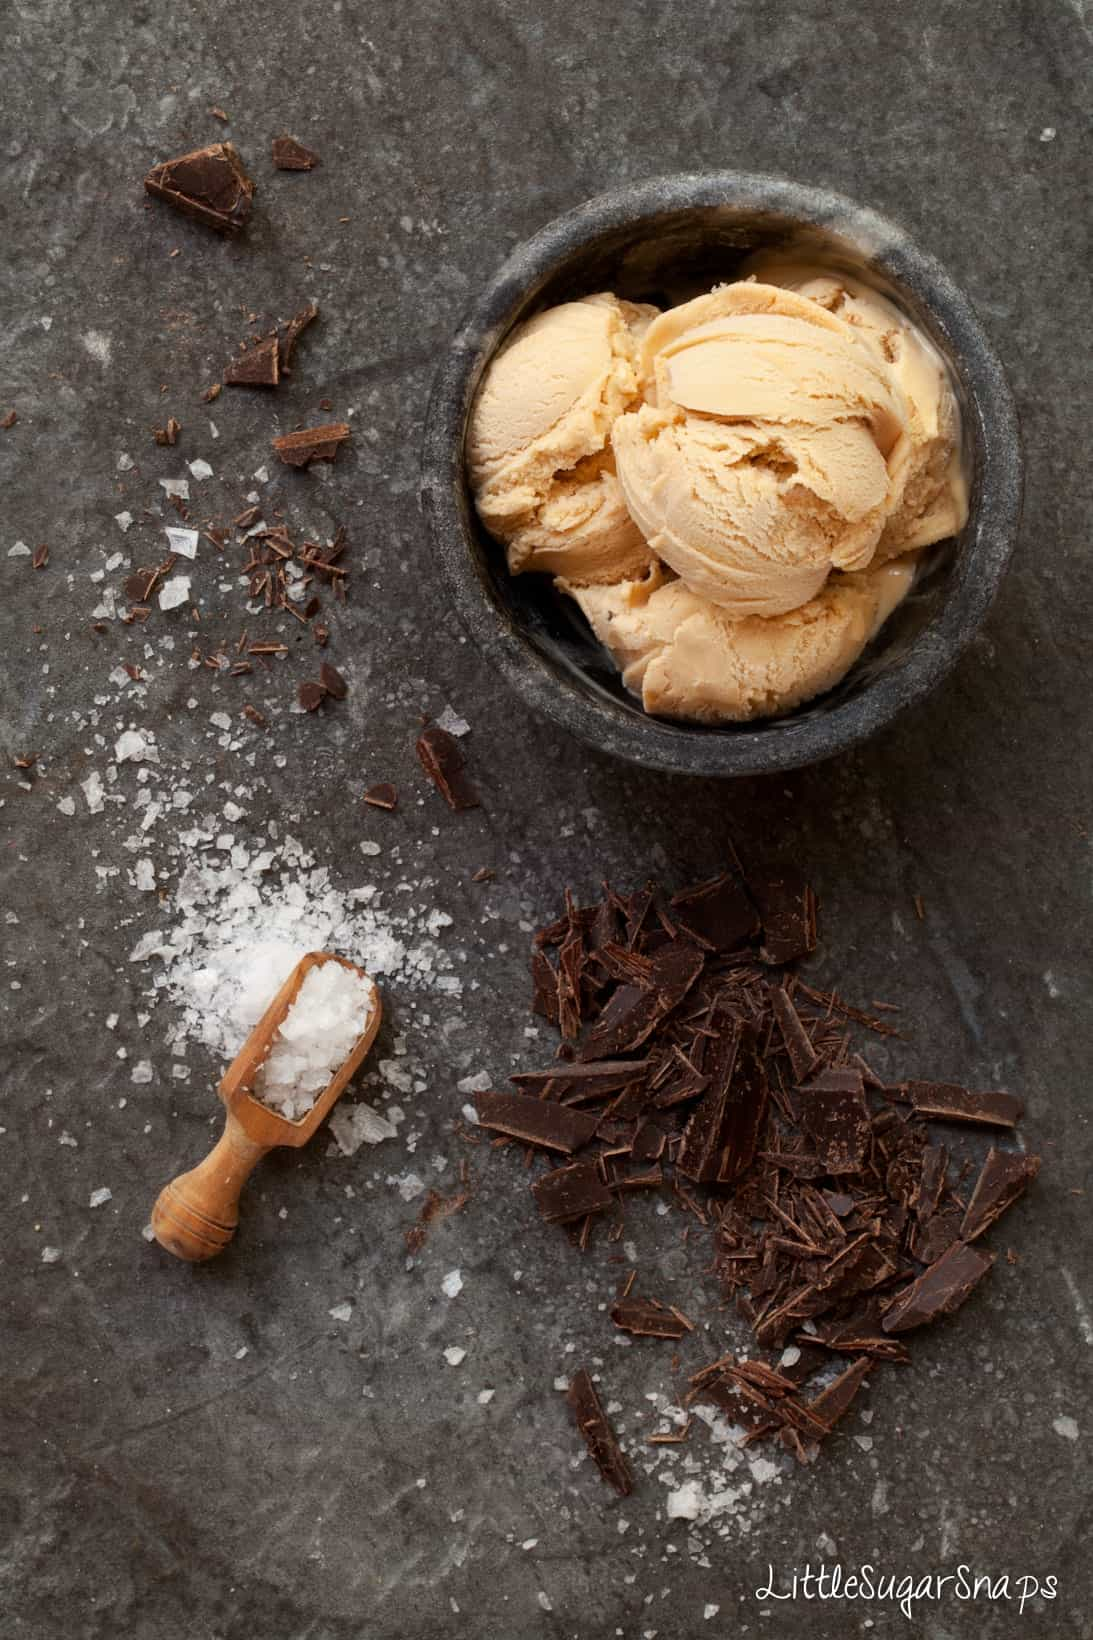 A bowl of salted caramel ice cream with dark chocolate and sea salt alongside